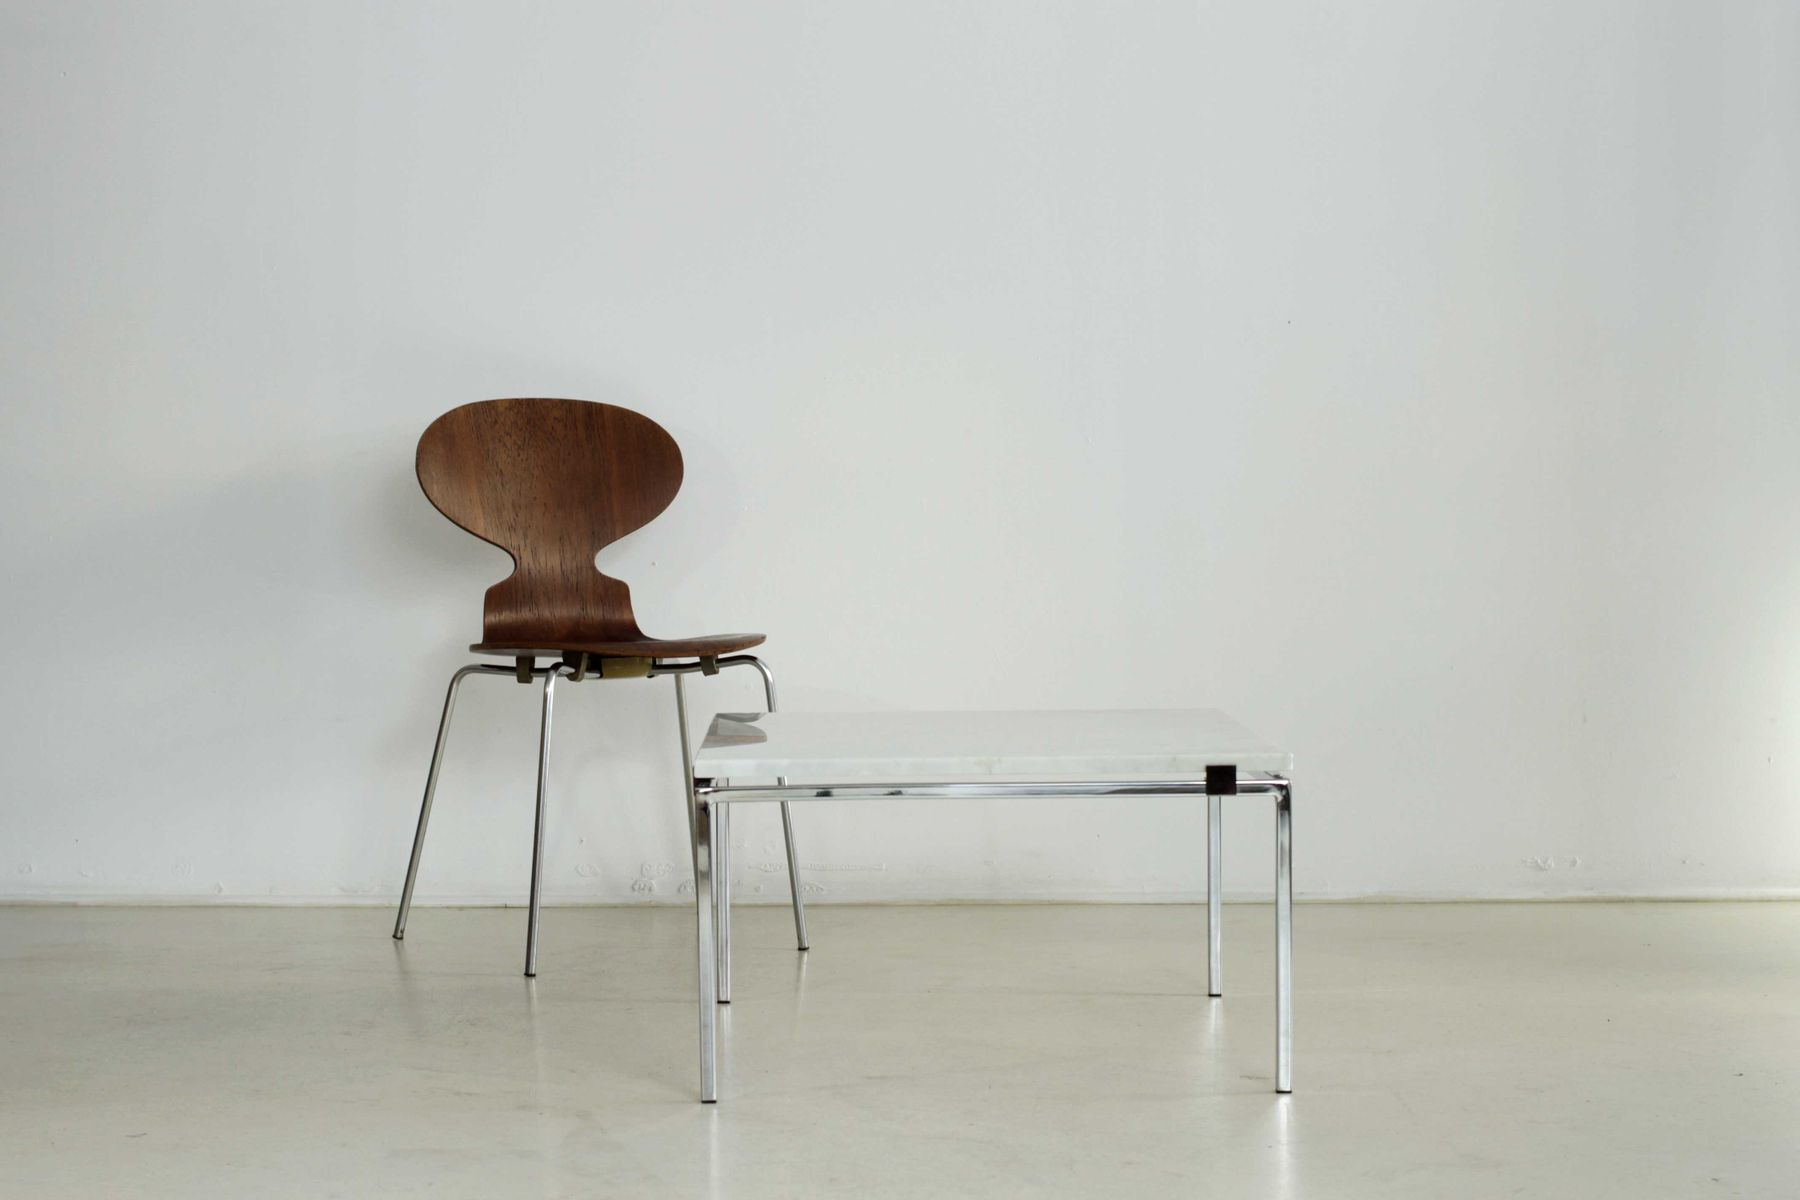 Marble table by alain richard for meubles tv 1950 for sale at pamono - Meuble tv table basse assorti ...